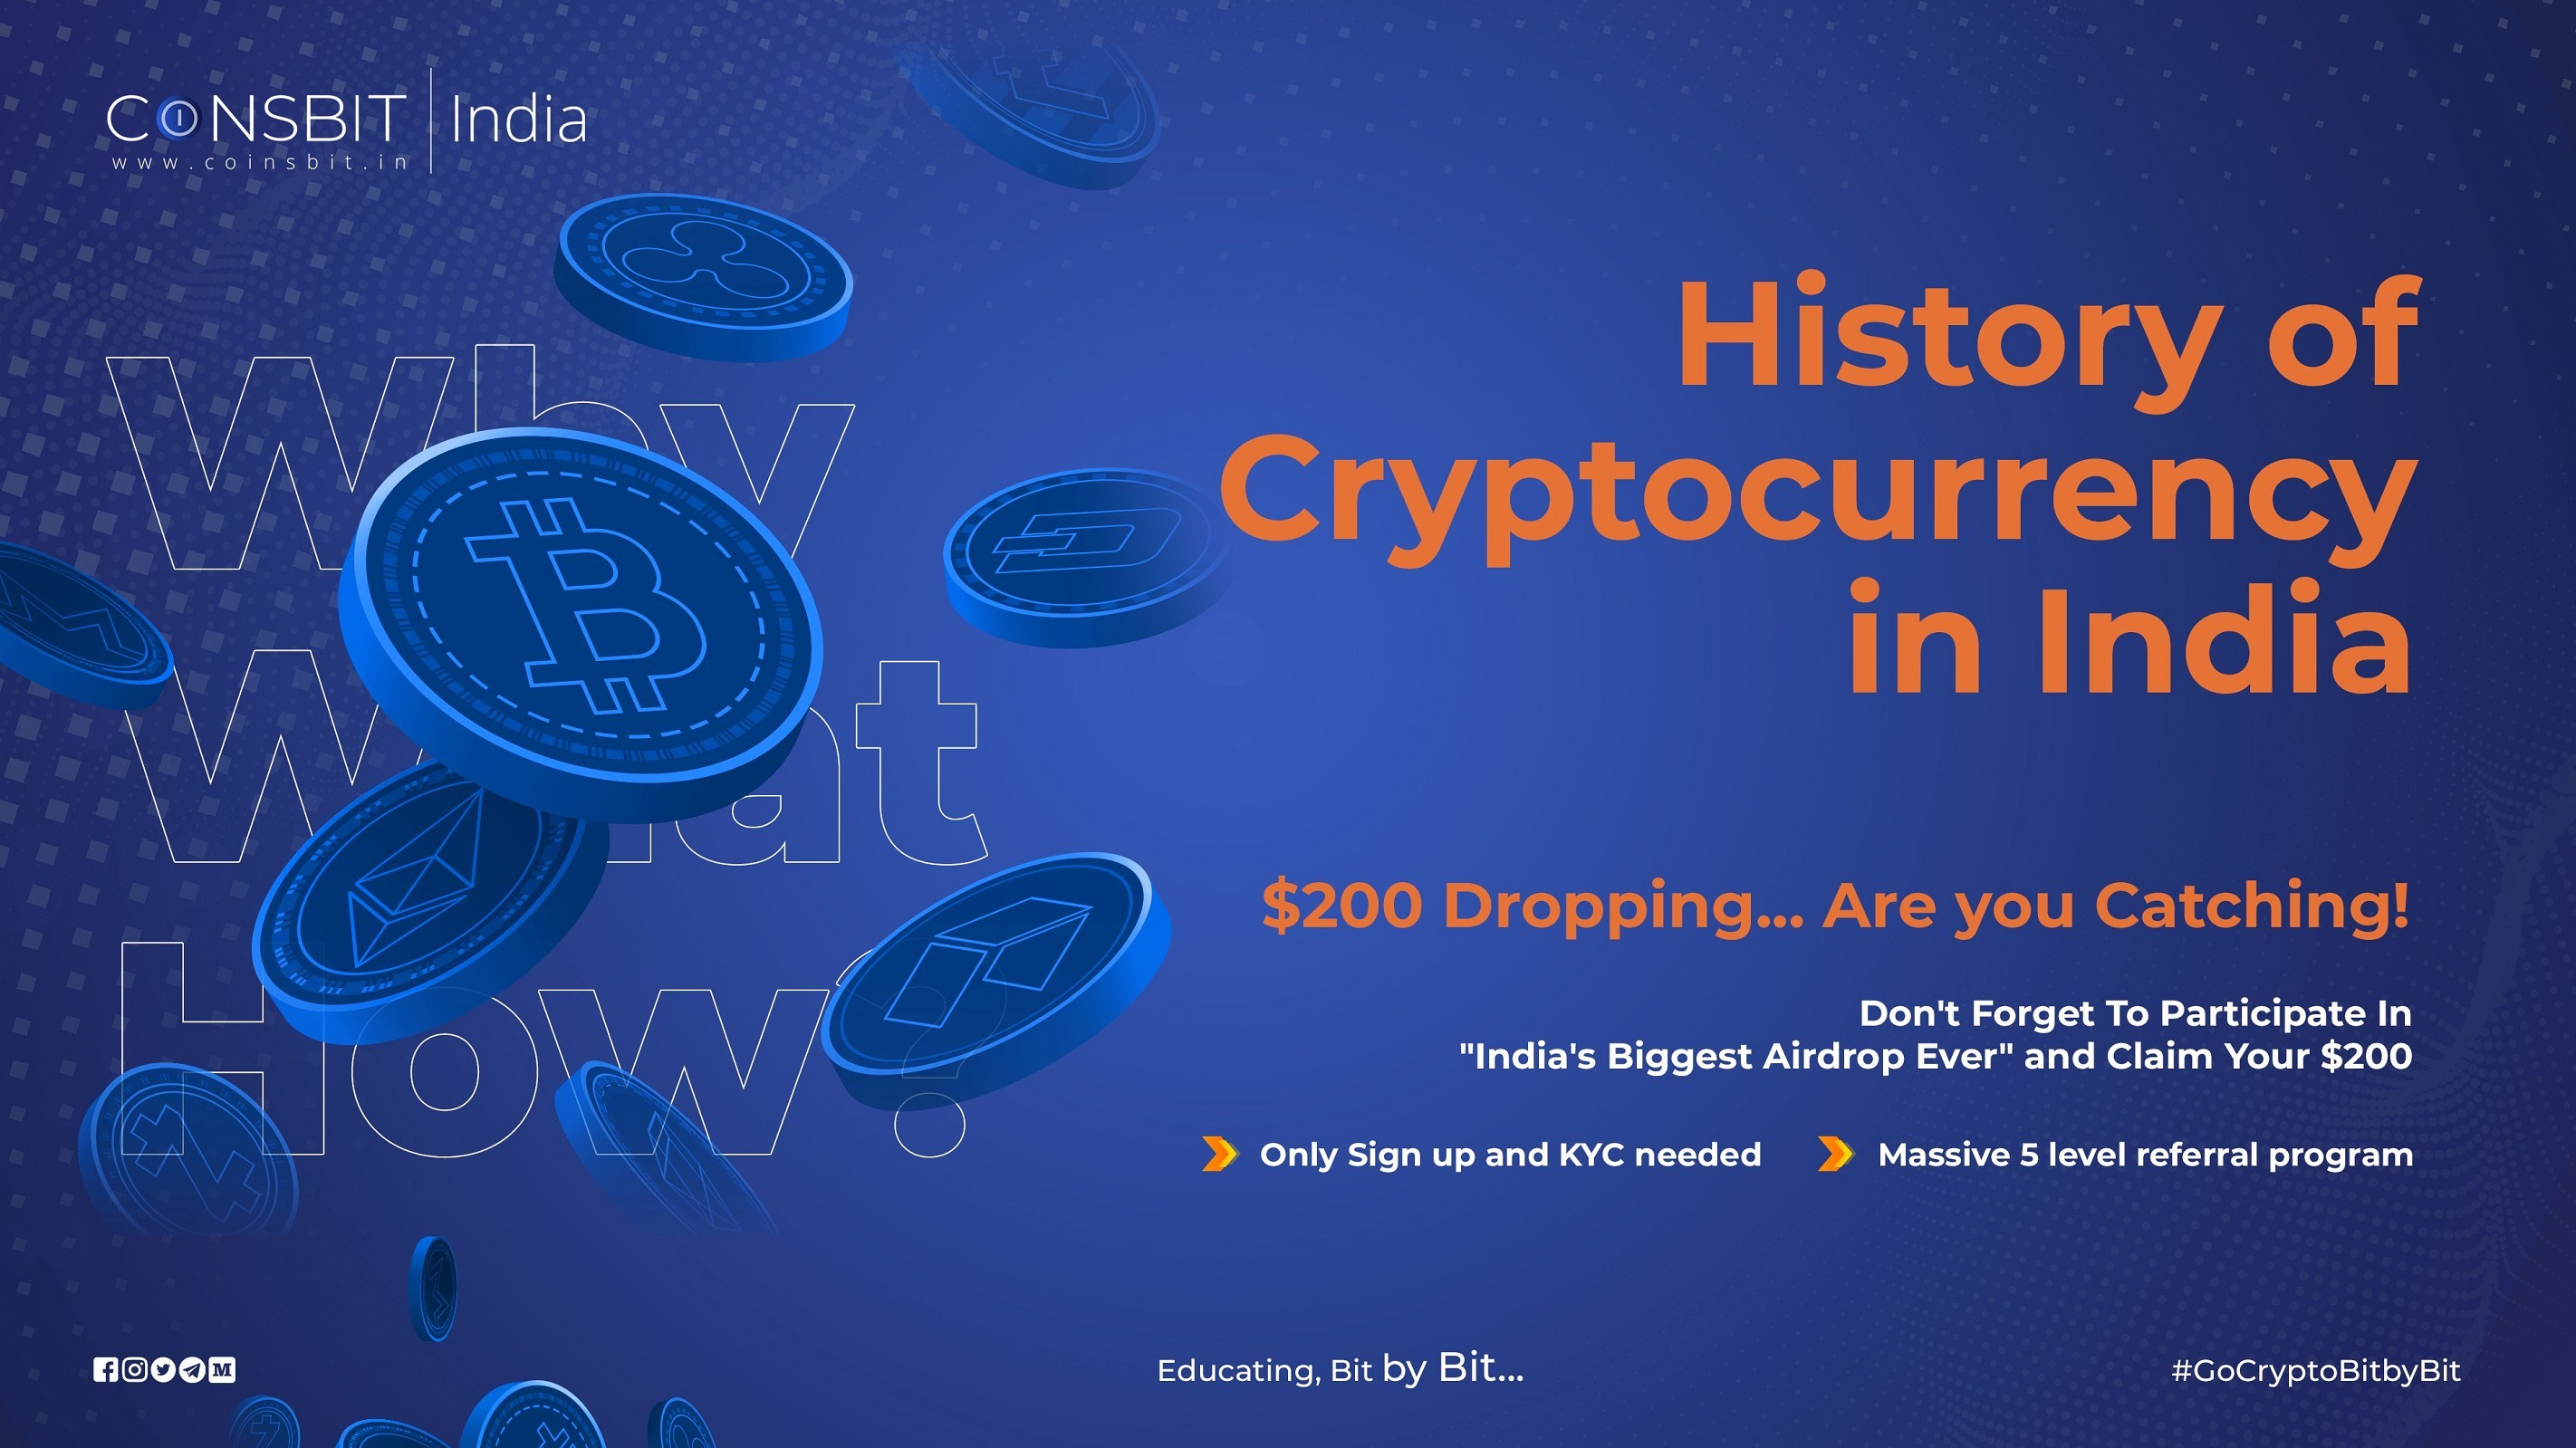 History of Cryptocurrency in India